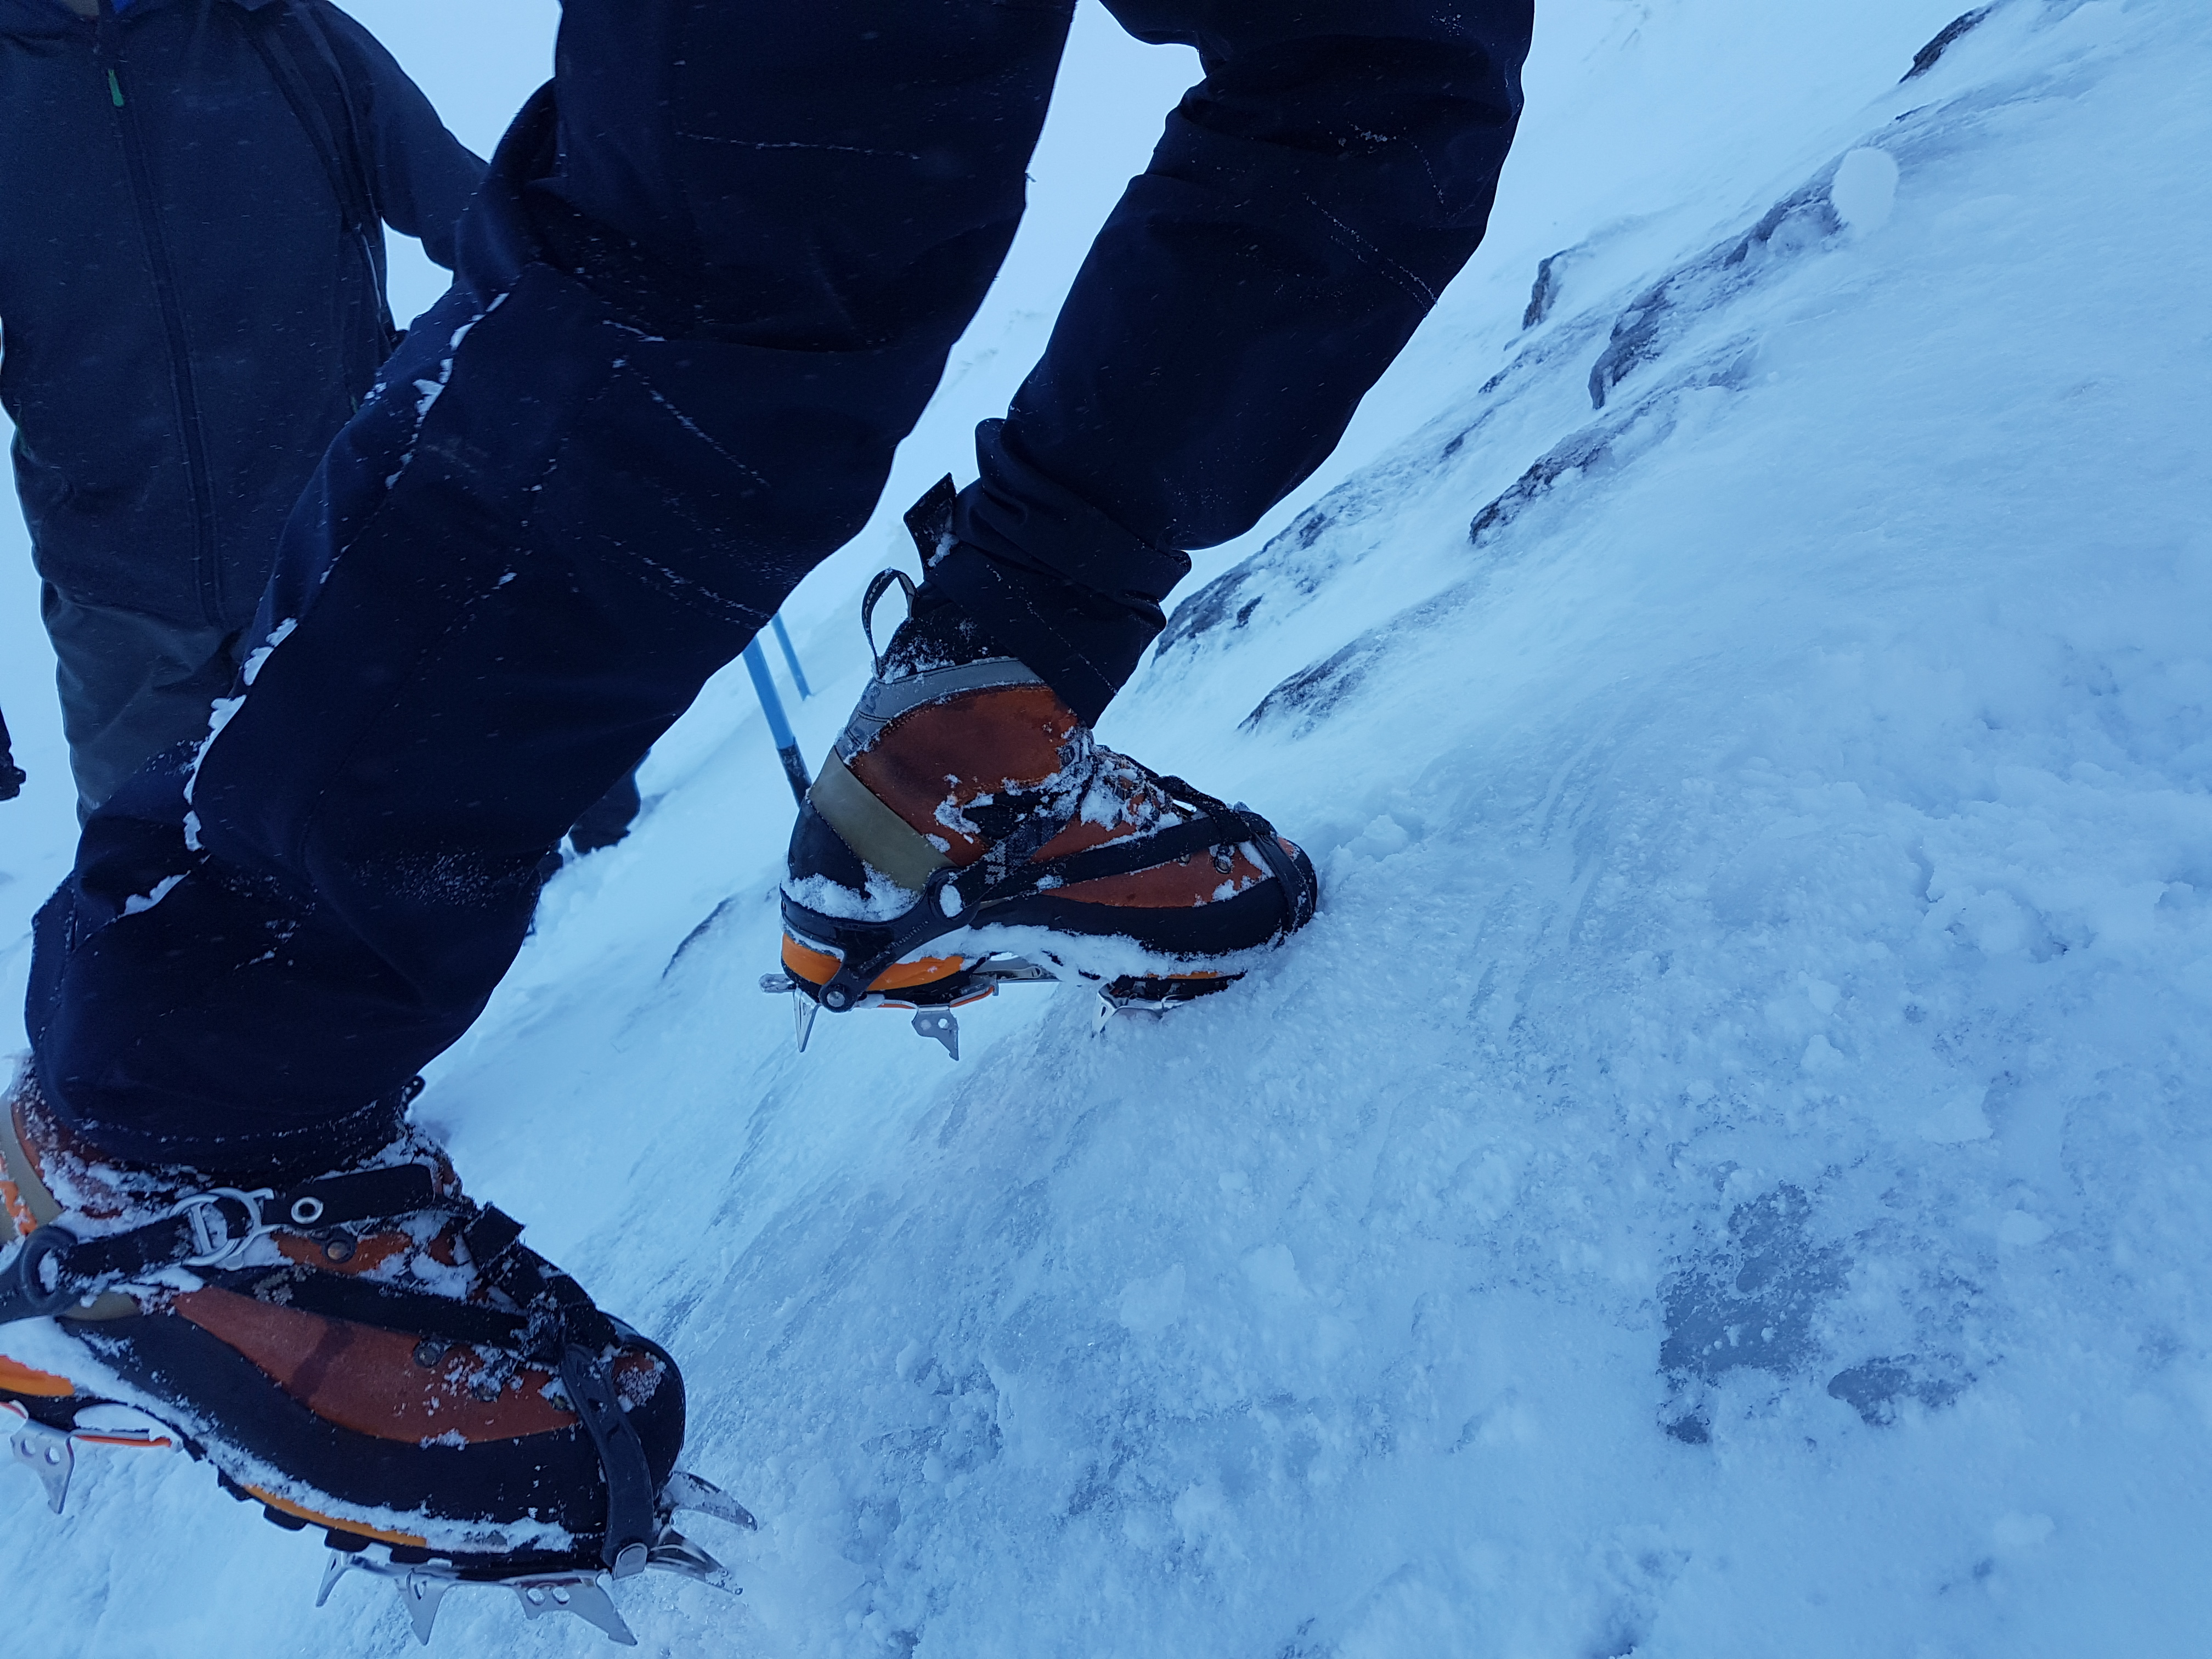 Learning how to use Crampons